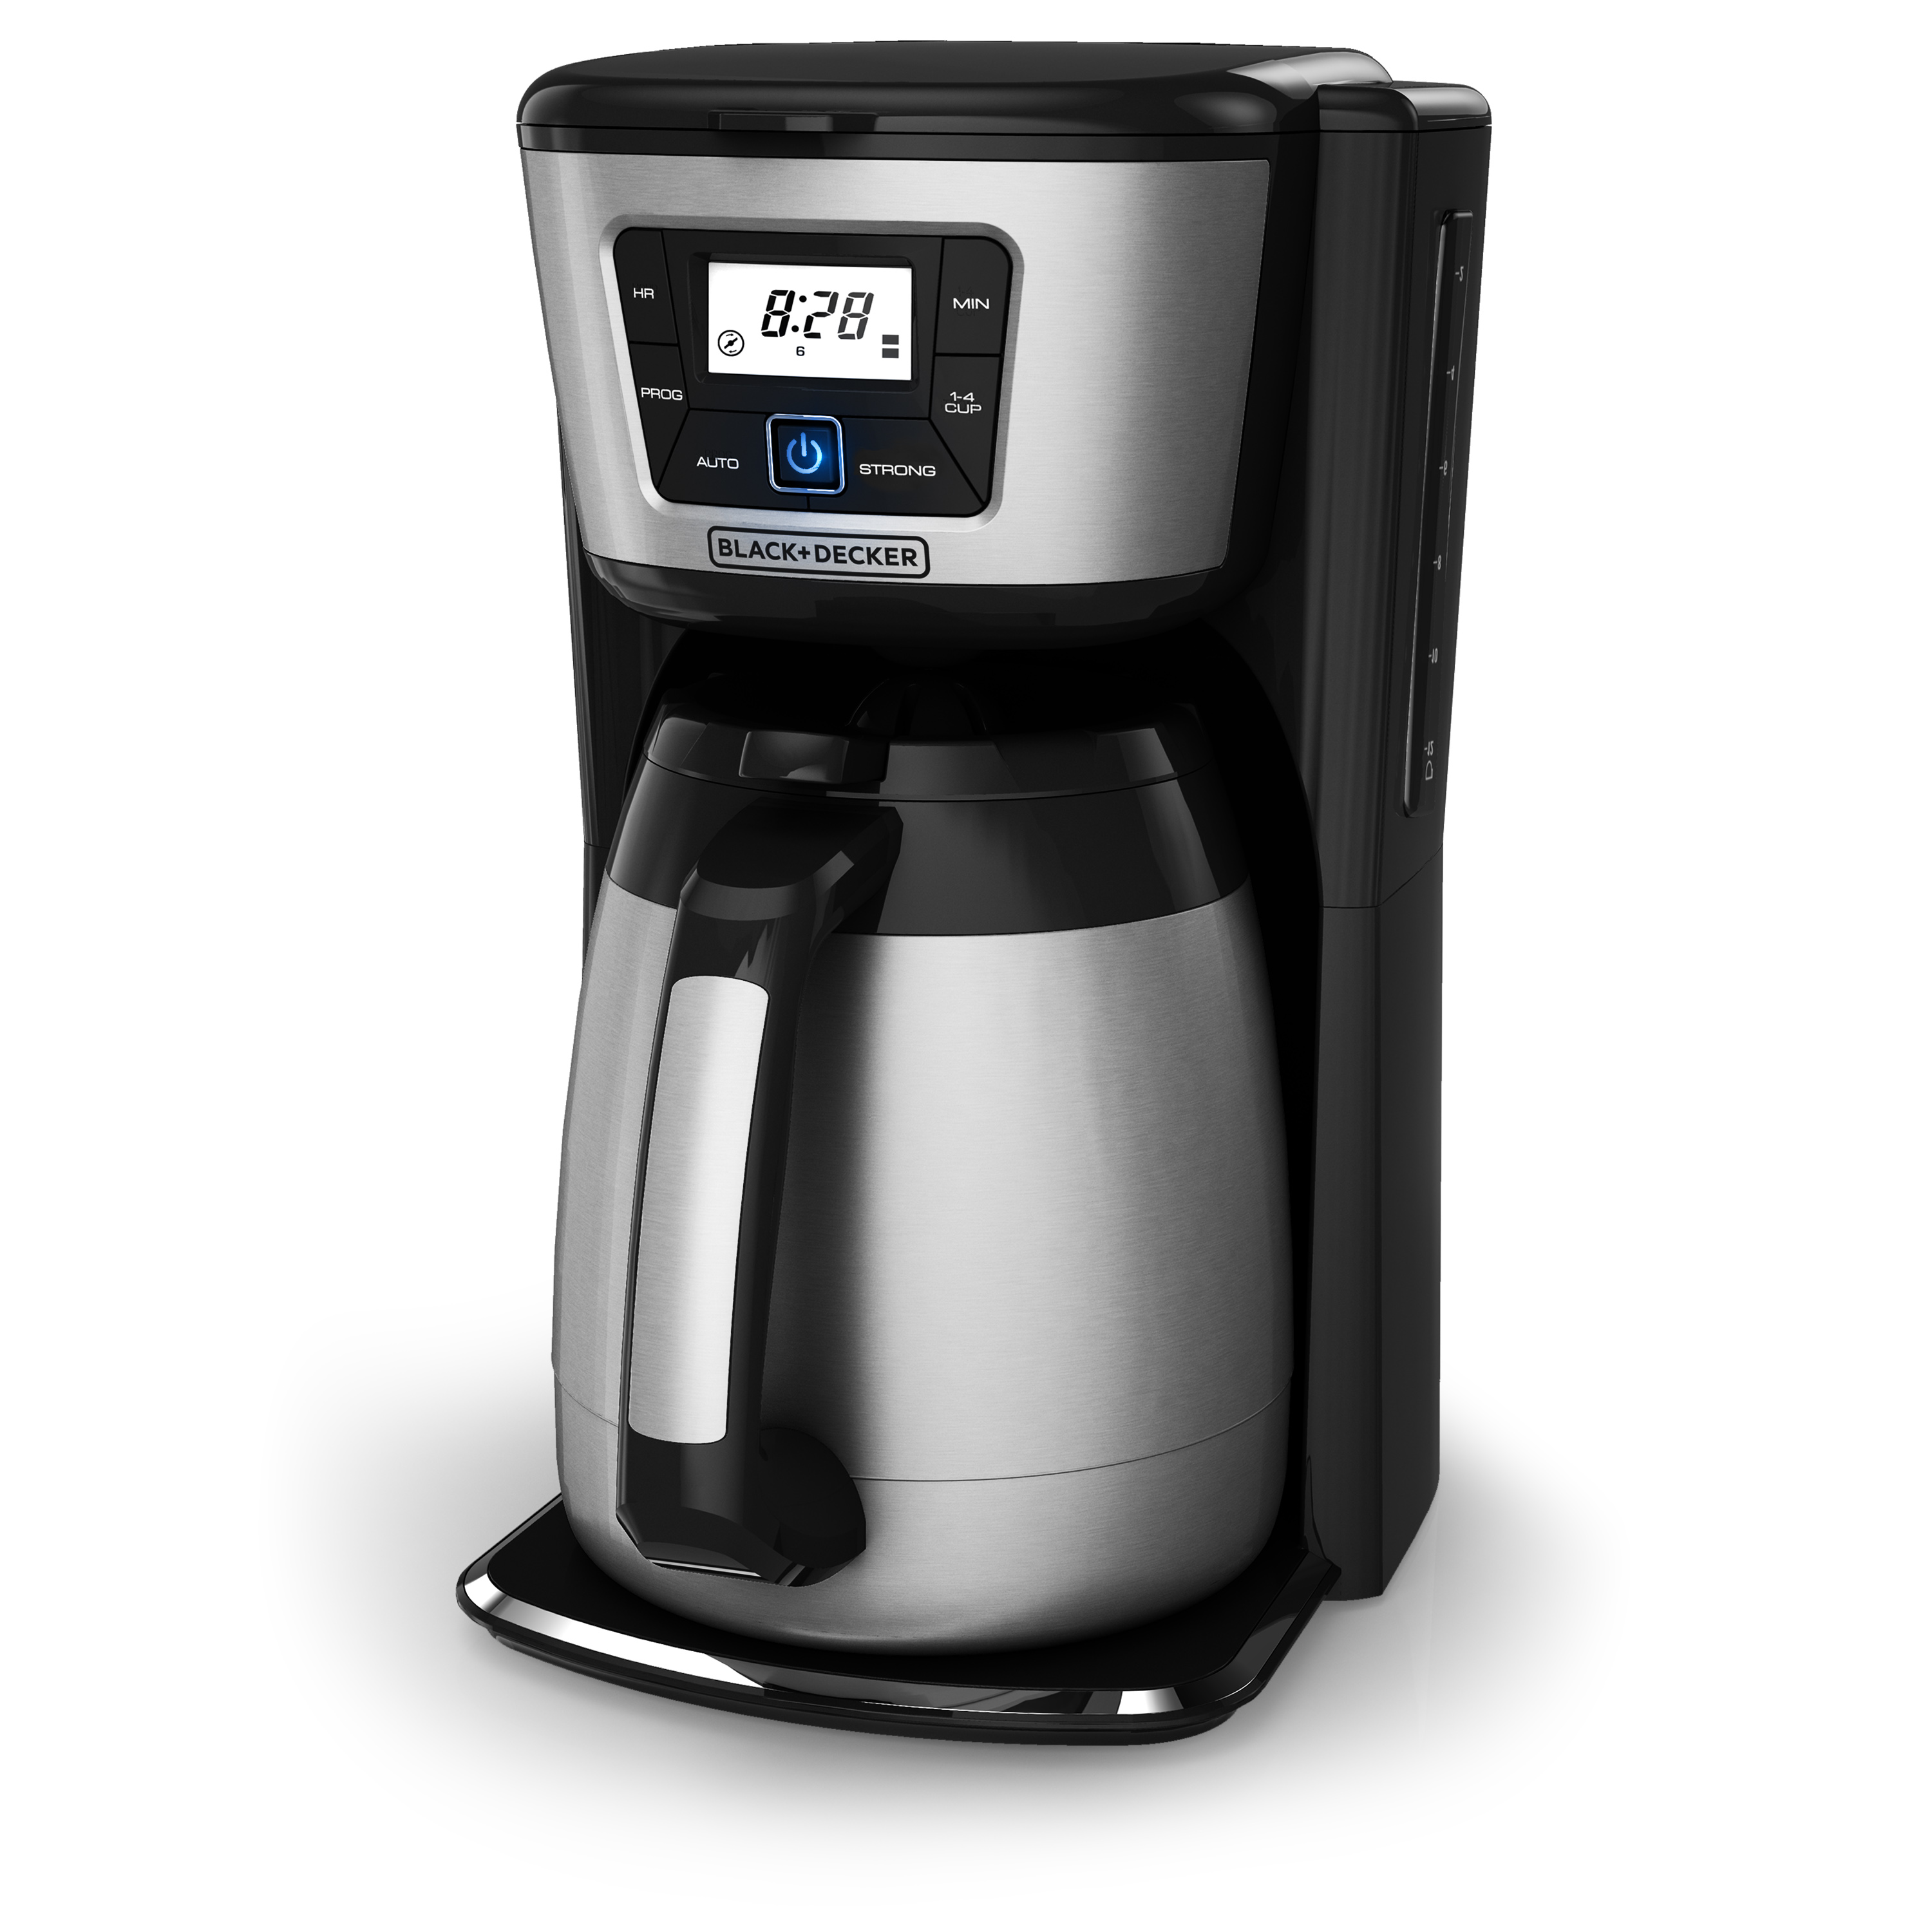 BLACK+DECKER 12-Cup* Thermal Coffeemaker, Black/Stainless Steel, CM2035B